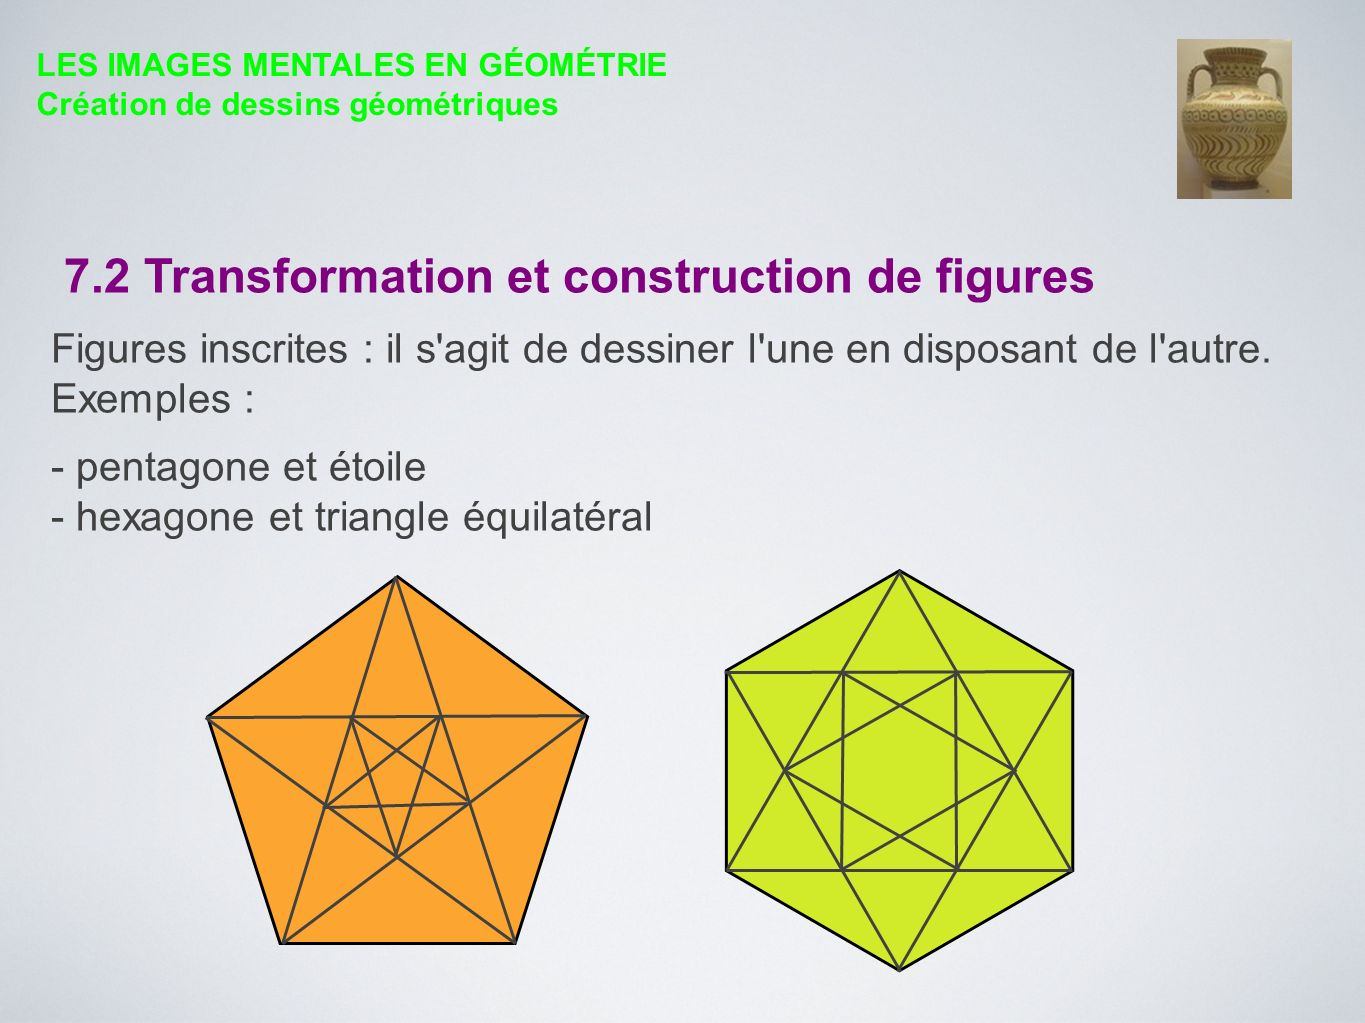 7.2 Transformation et construction de figures